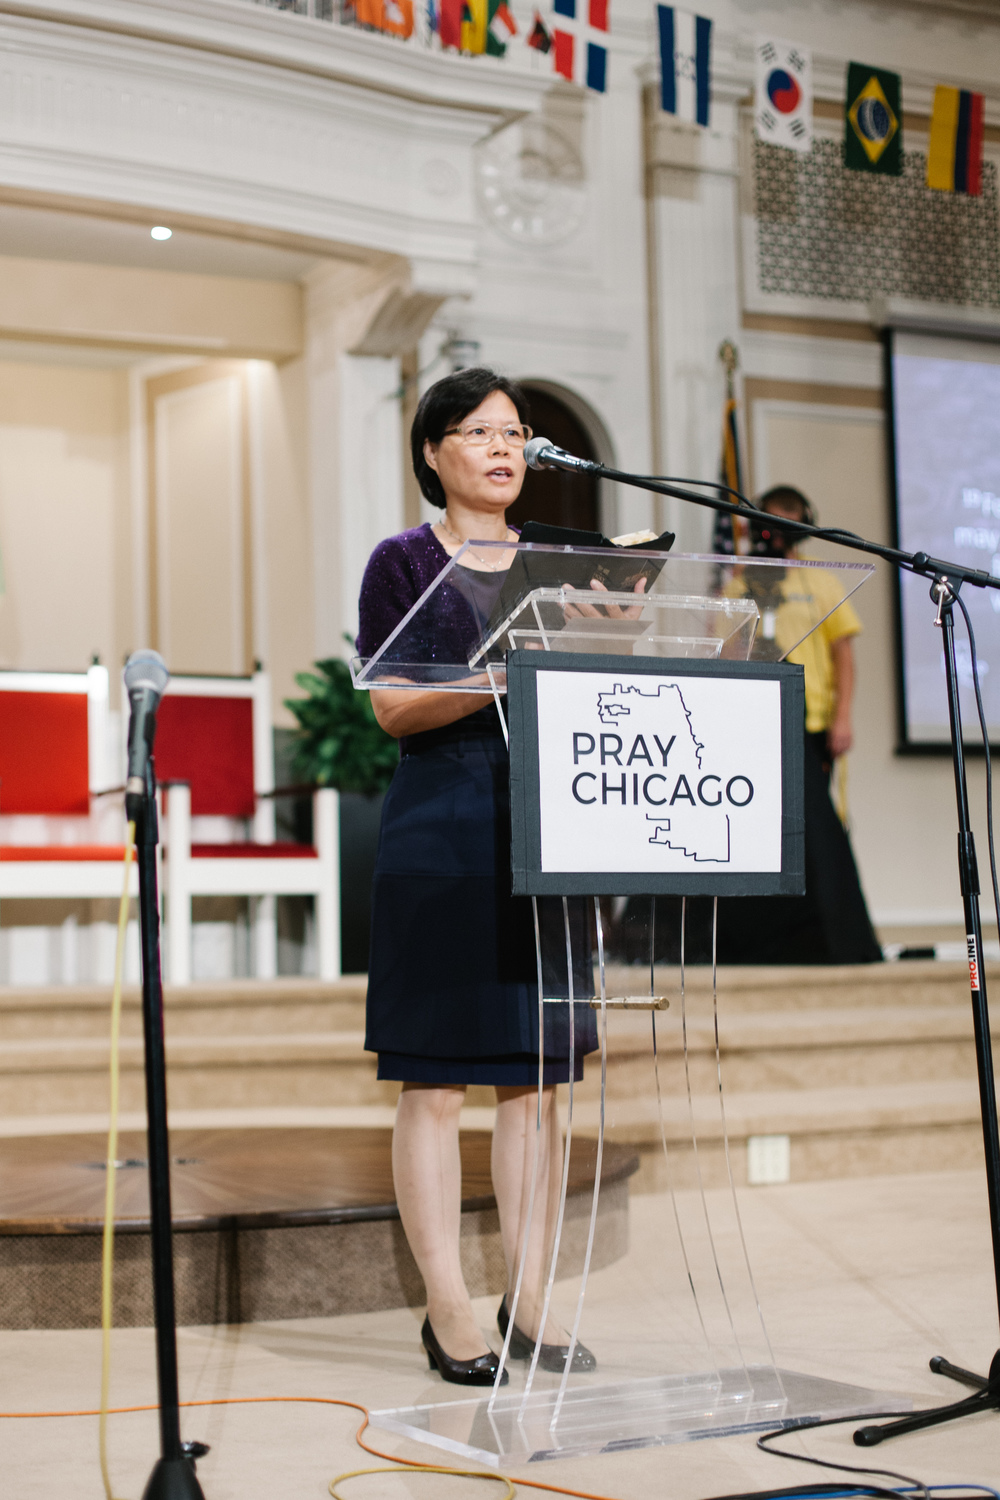 praychicago-33.jpg